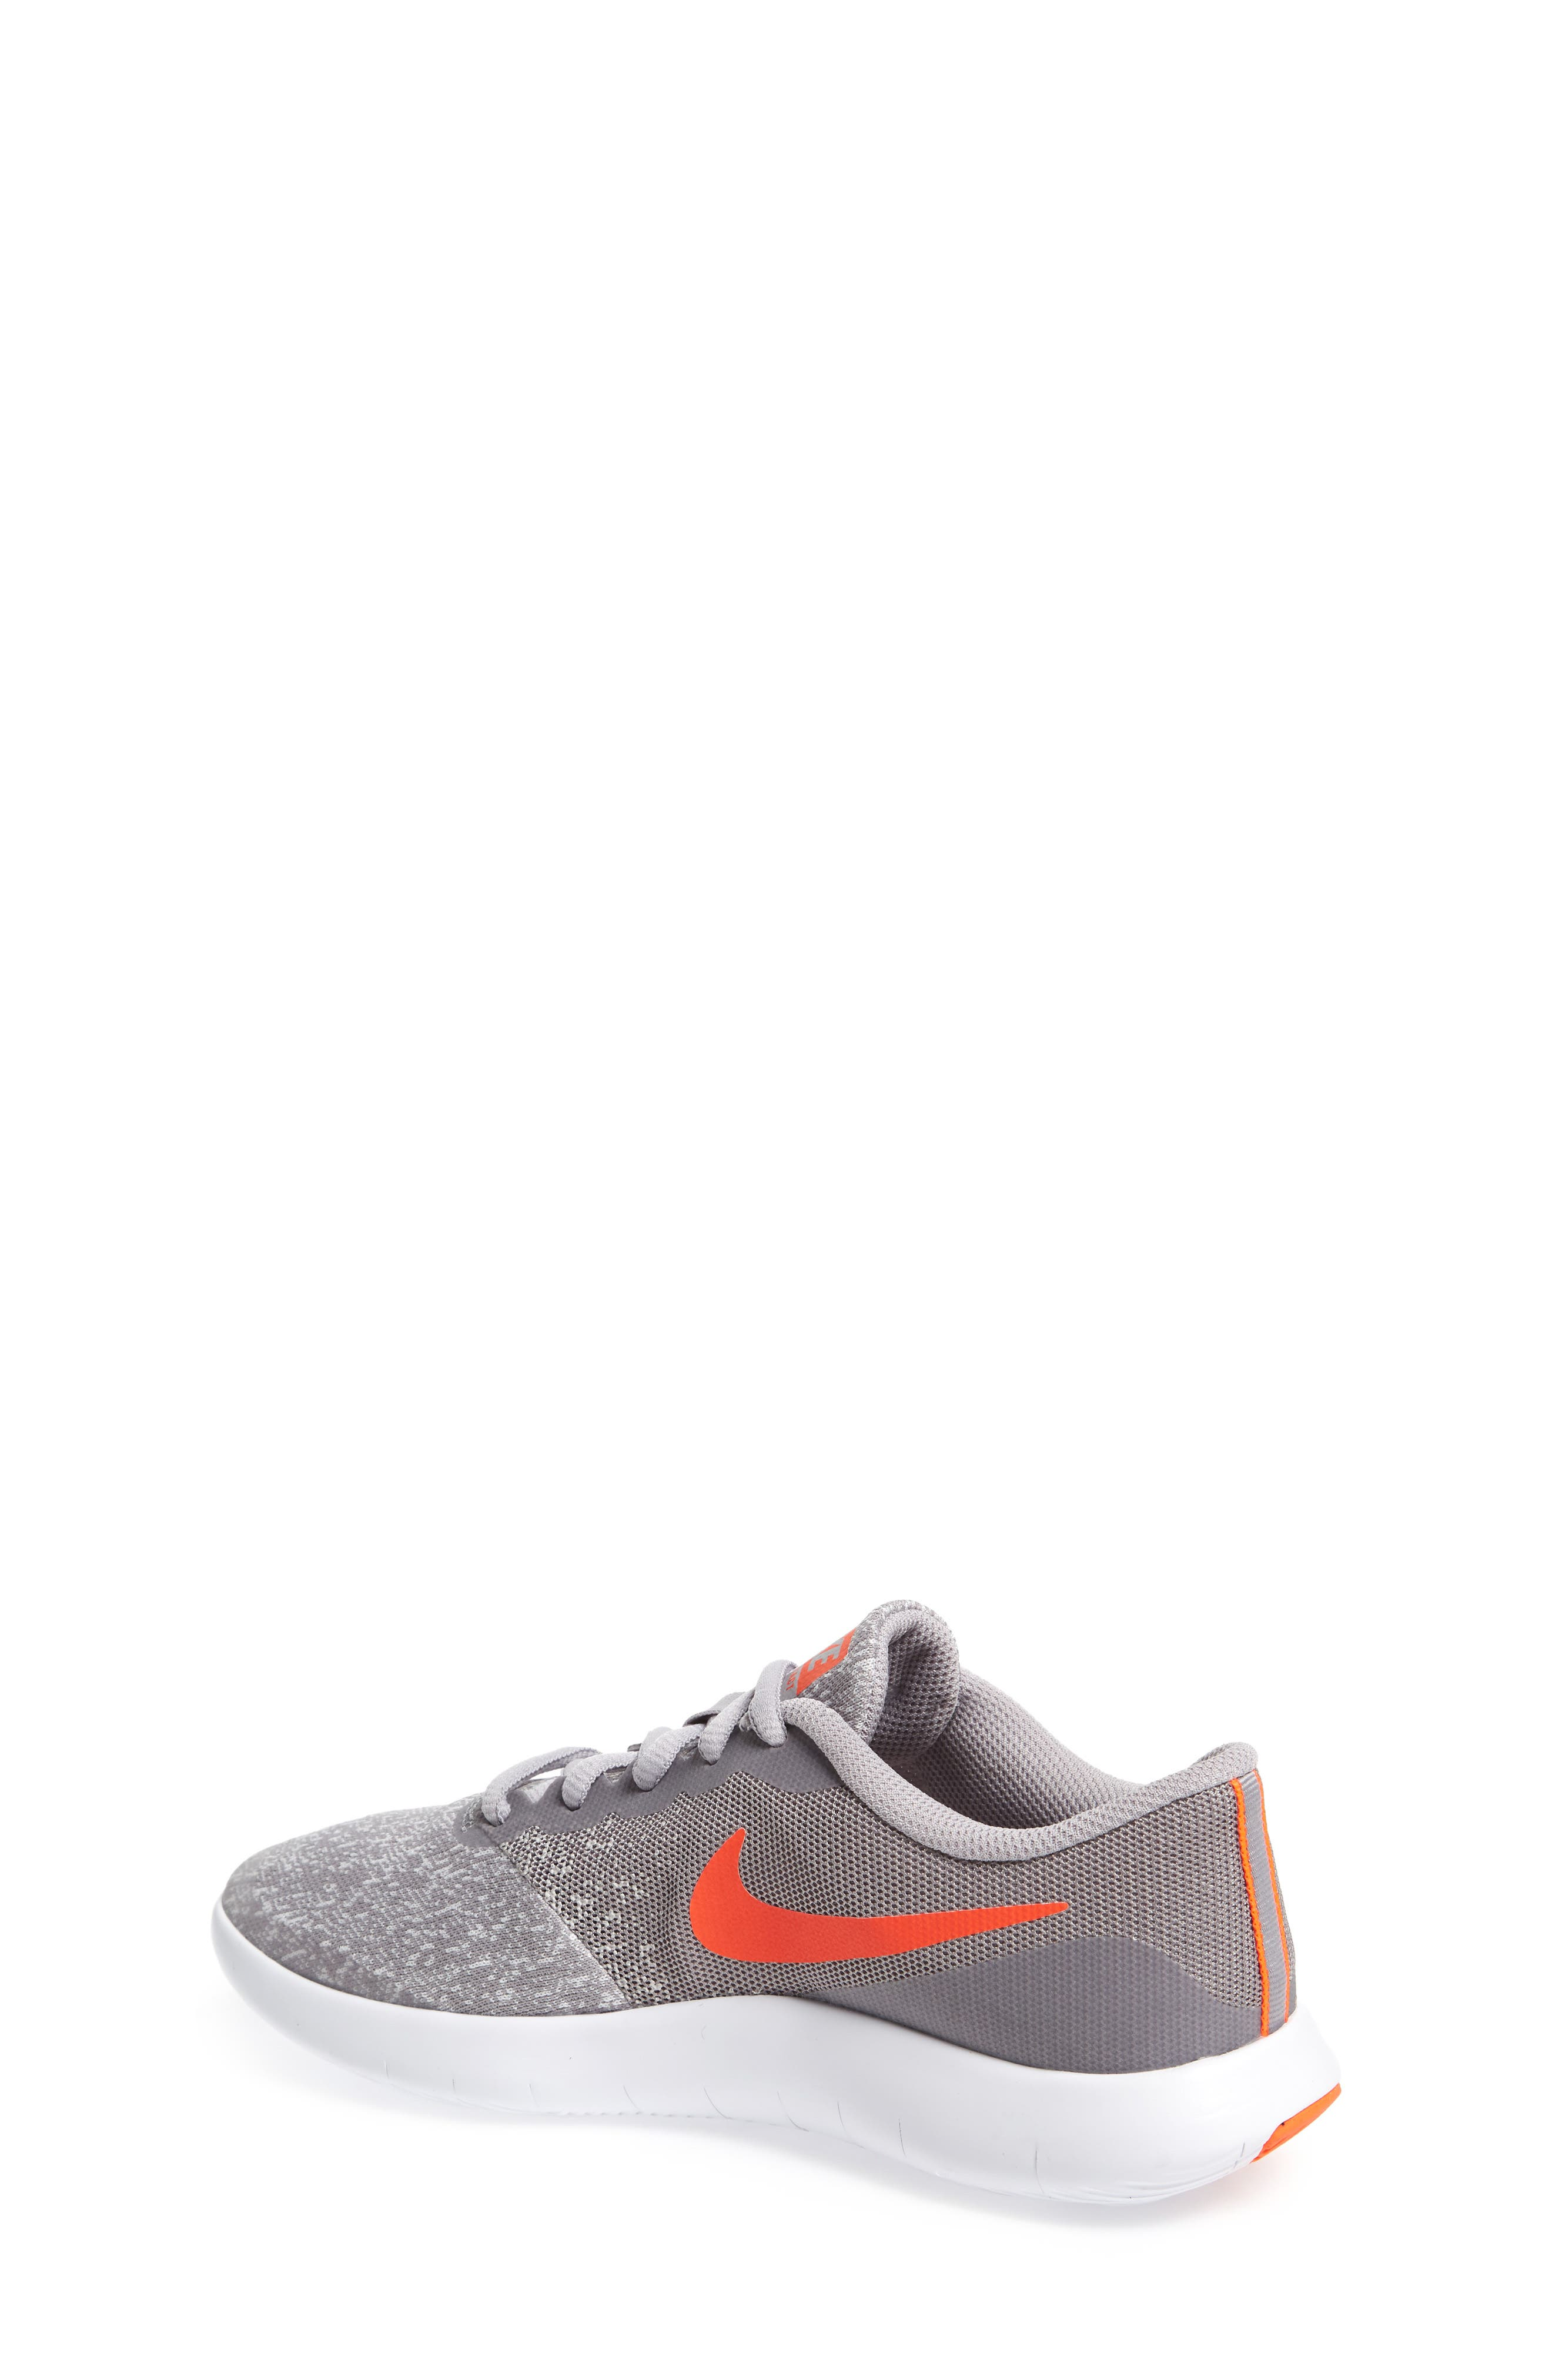 Flex Contact Running Shoe,                             Alternate thumbnail 2, color,                             Atmosphere Grey/ Total Crimson